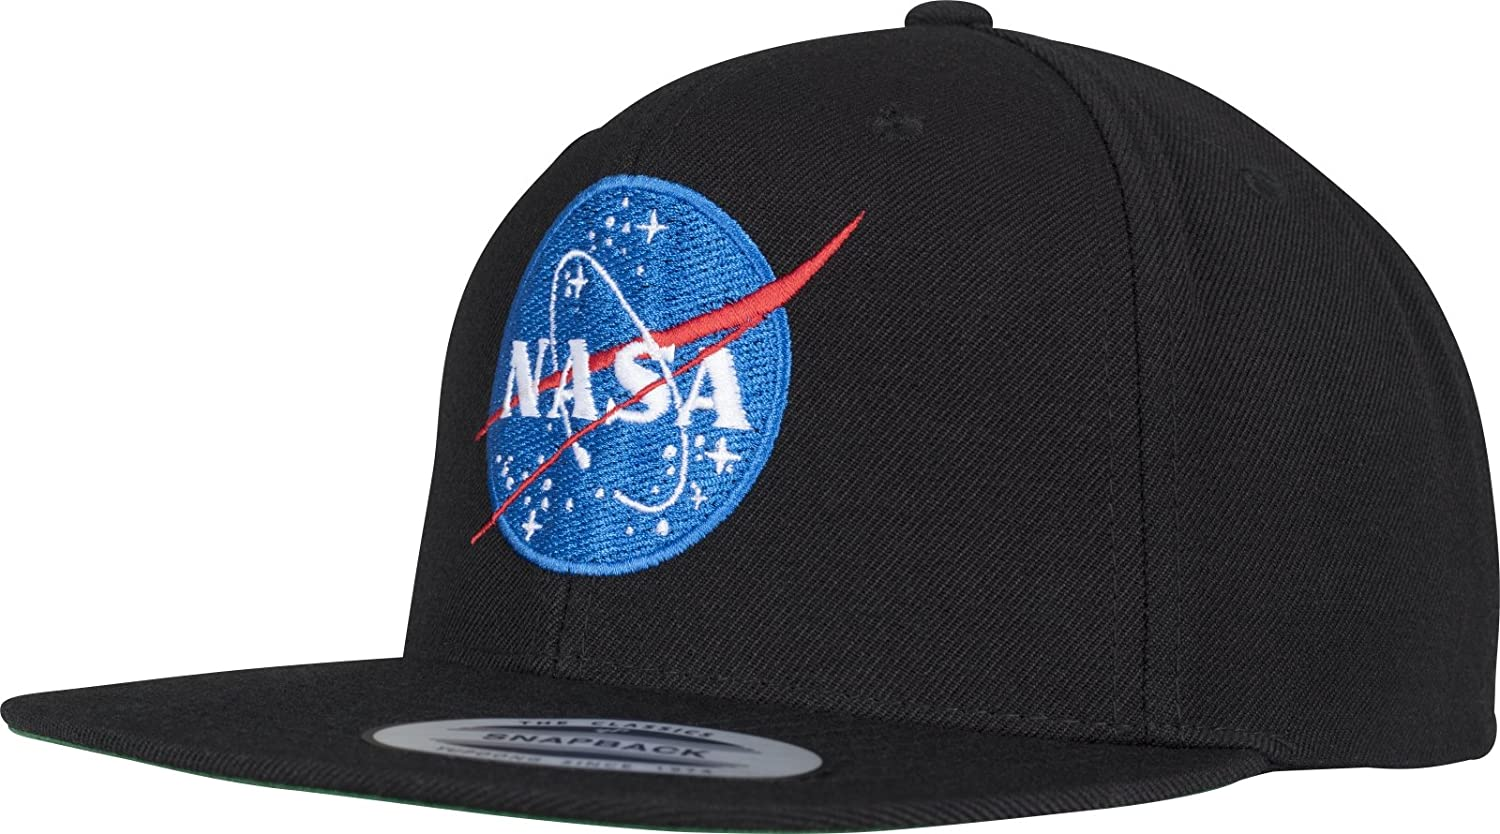 Mister Tee NASA Snapback Unisex Cap In Black For Men And Women With High  Quality Logo: Amazon.co.uk: Sports & Outdoors